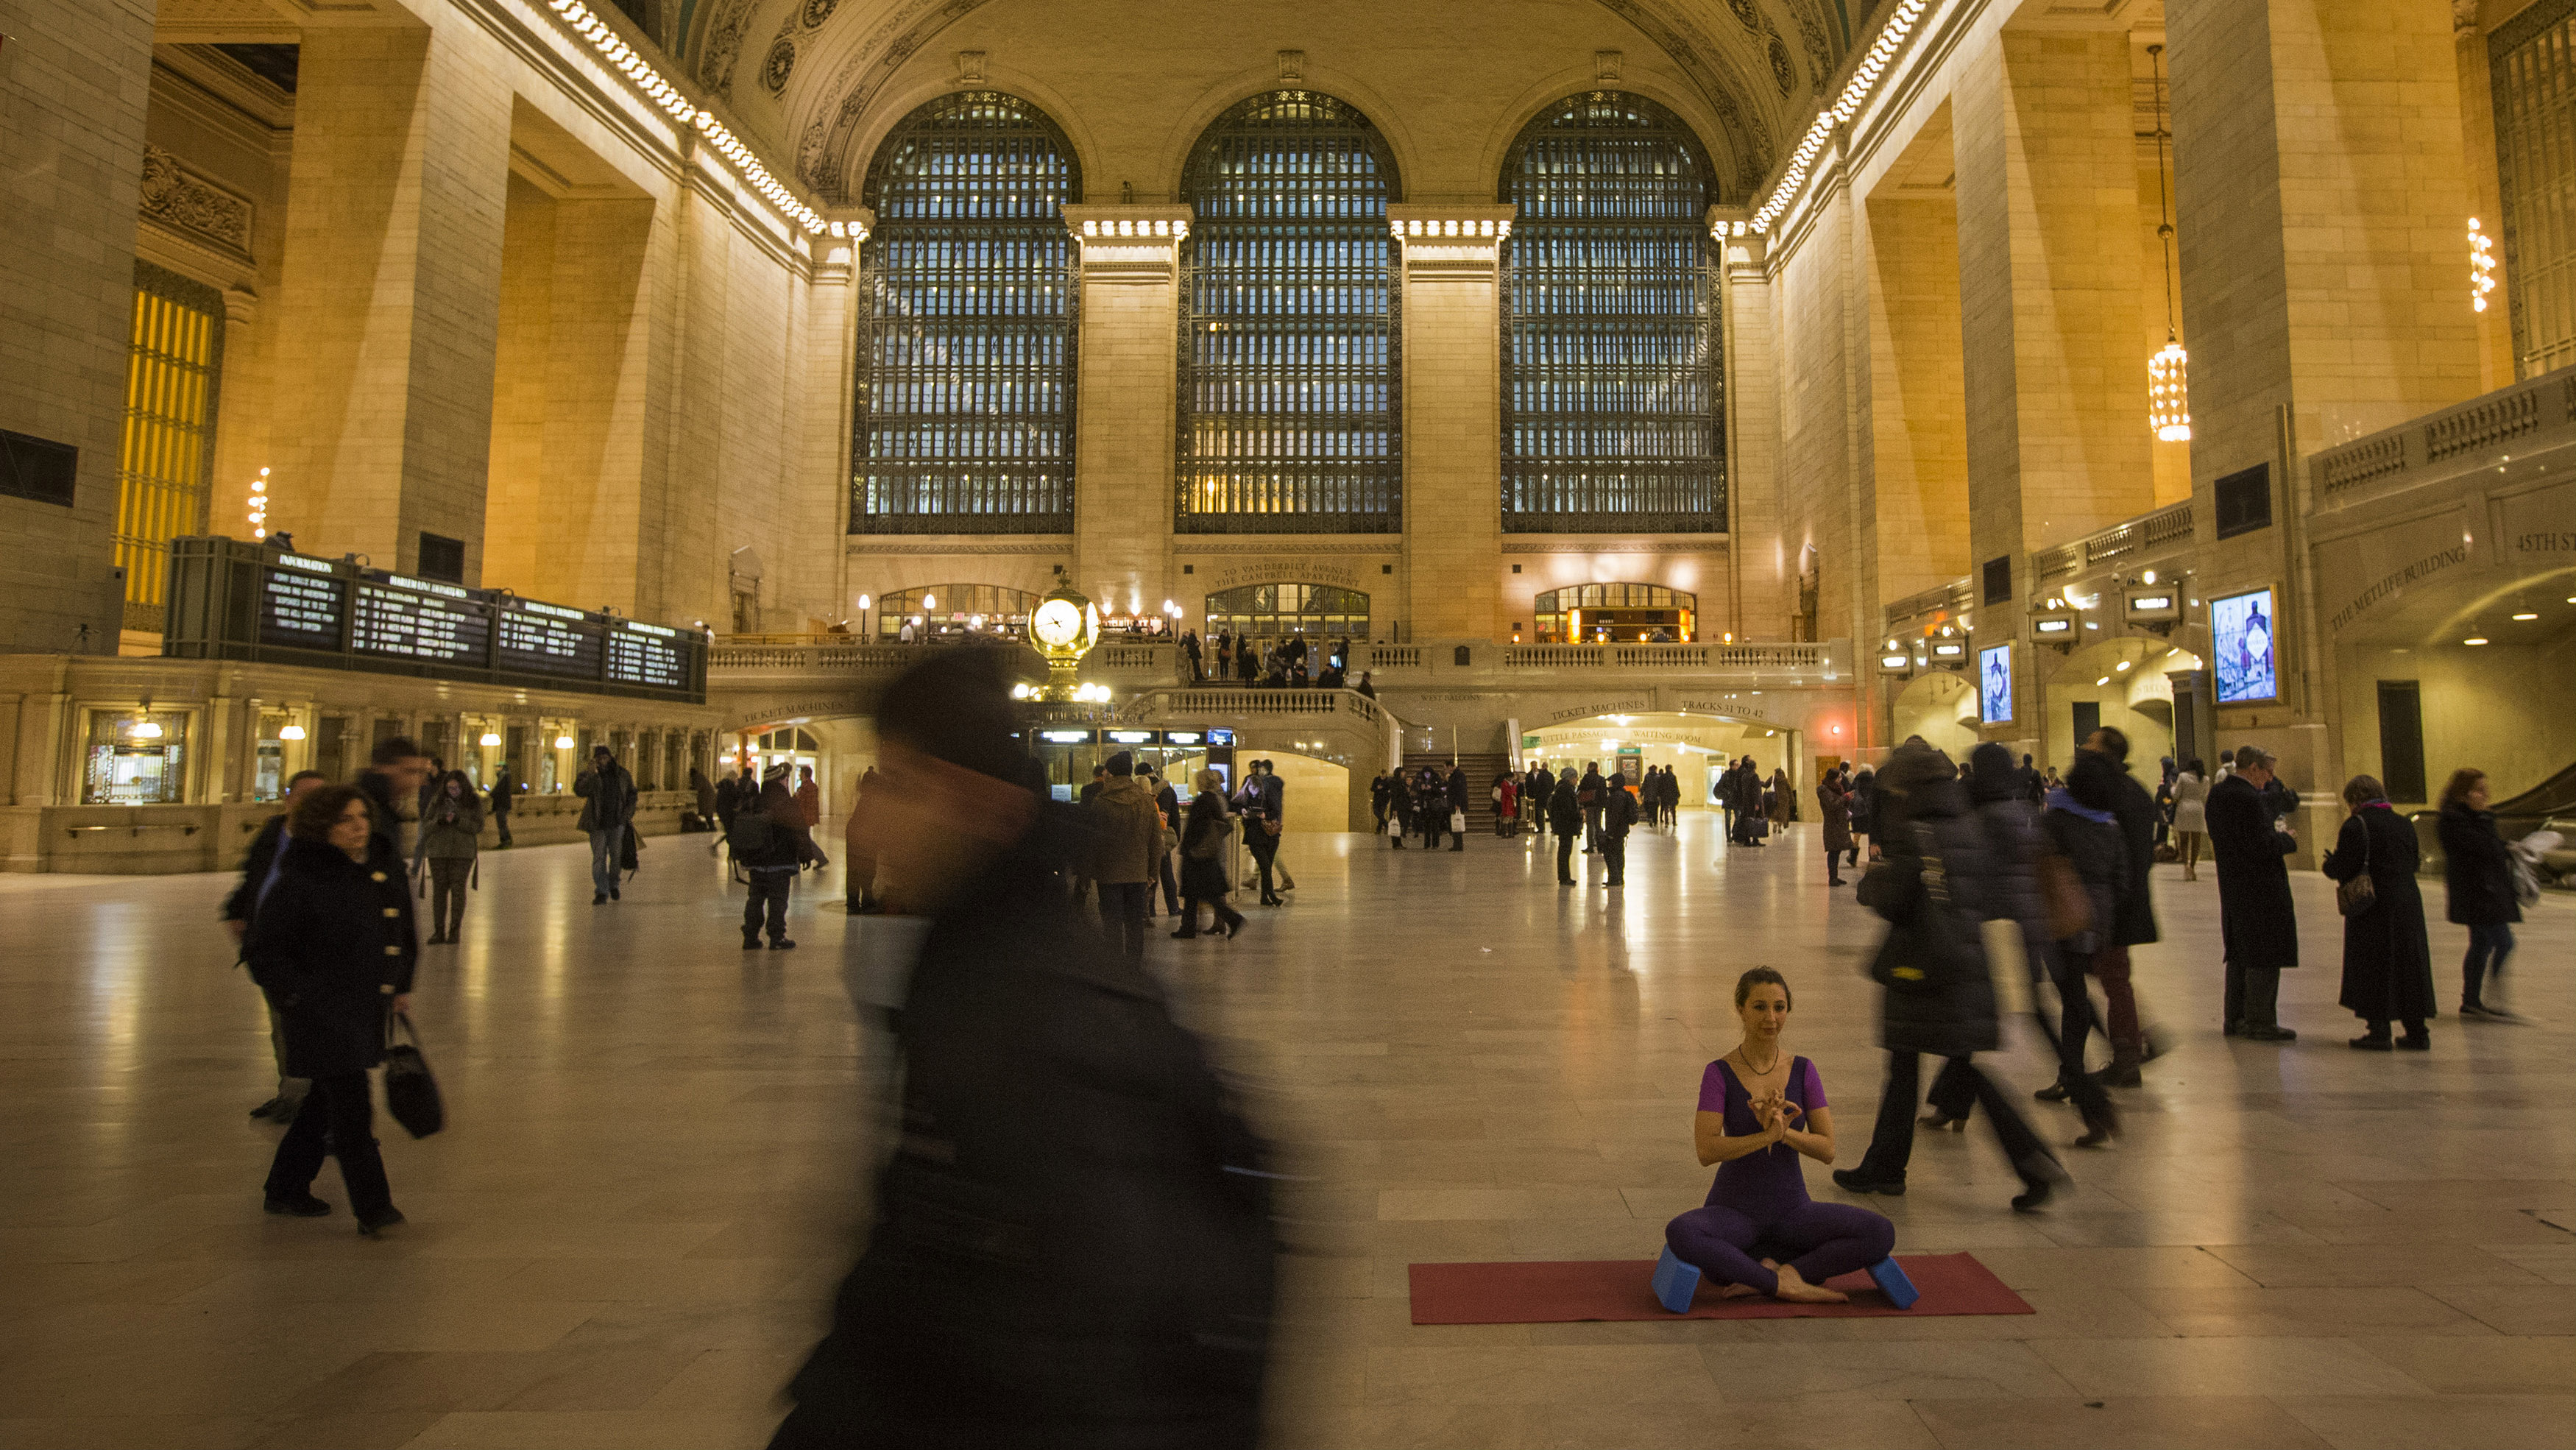 Dilek Edwards, a yoga instructor from Istanbul, Turkey who lives in New York, takes a meditative posture while posing for a friend's yoga fashion line in the main concourse of Grand Central Terminal in New York January 9, 2014.